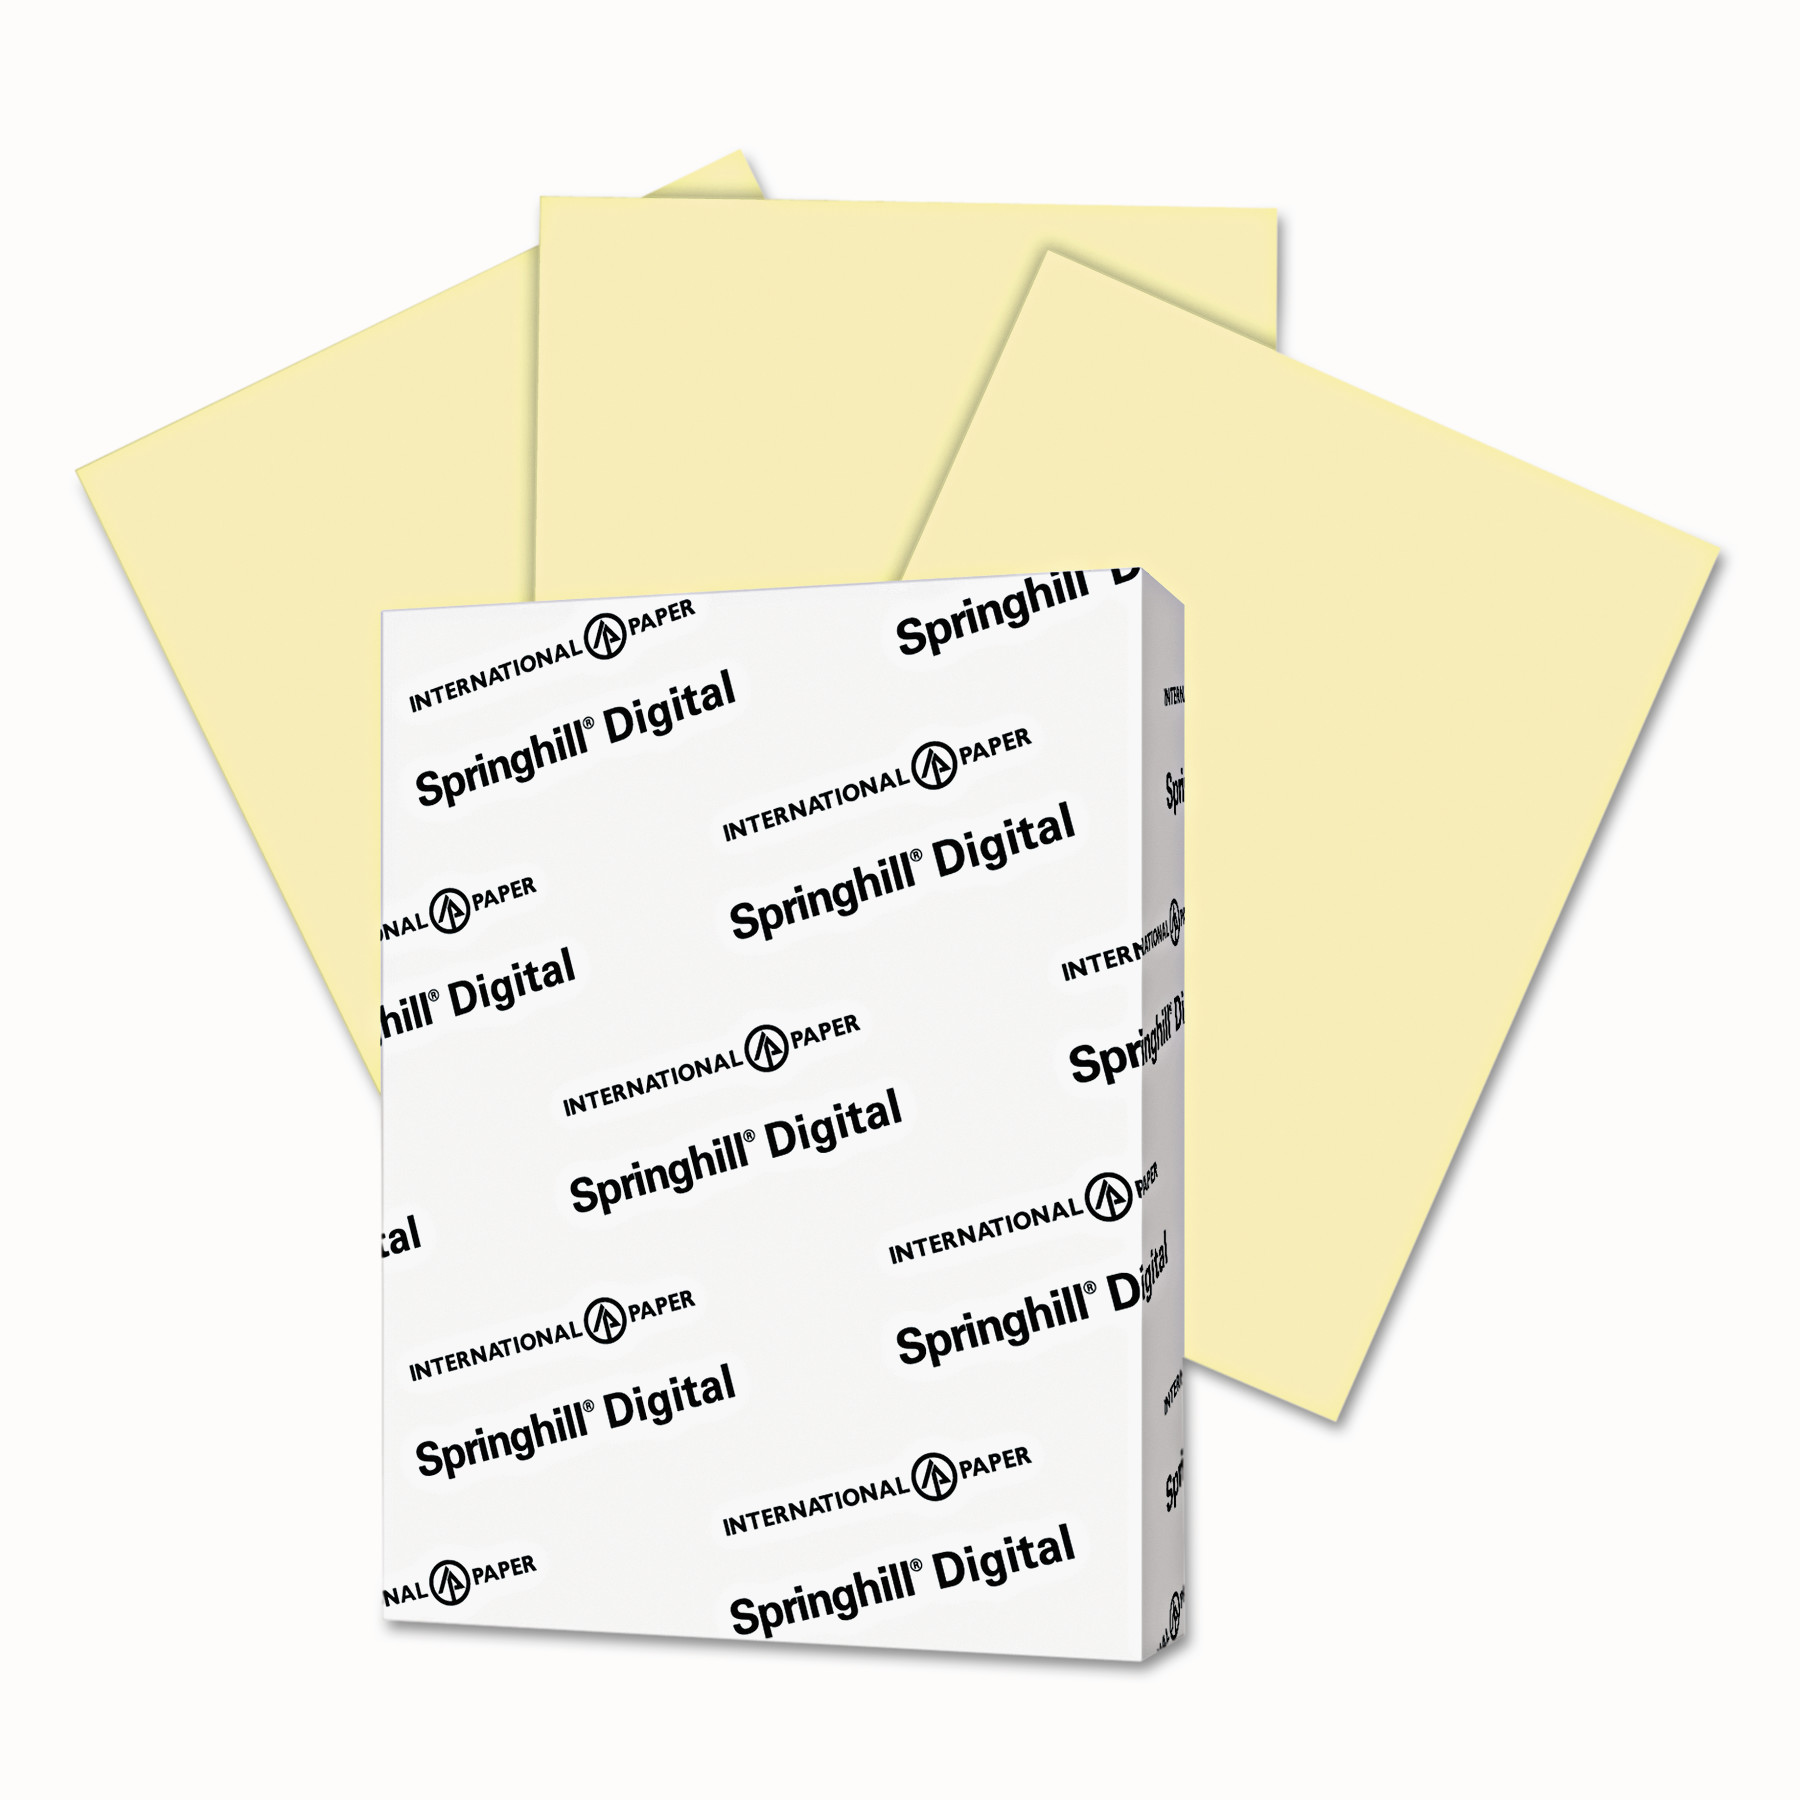 Springhill Digital Vellum Bristol Color Cover, 67 lb, 8 1/2 x 11, Canary, 250 Sheets/Pack -SGH036000